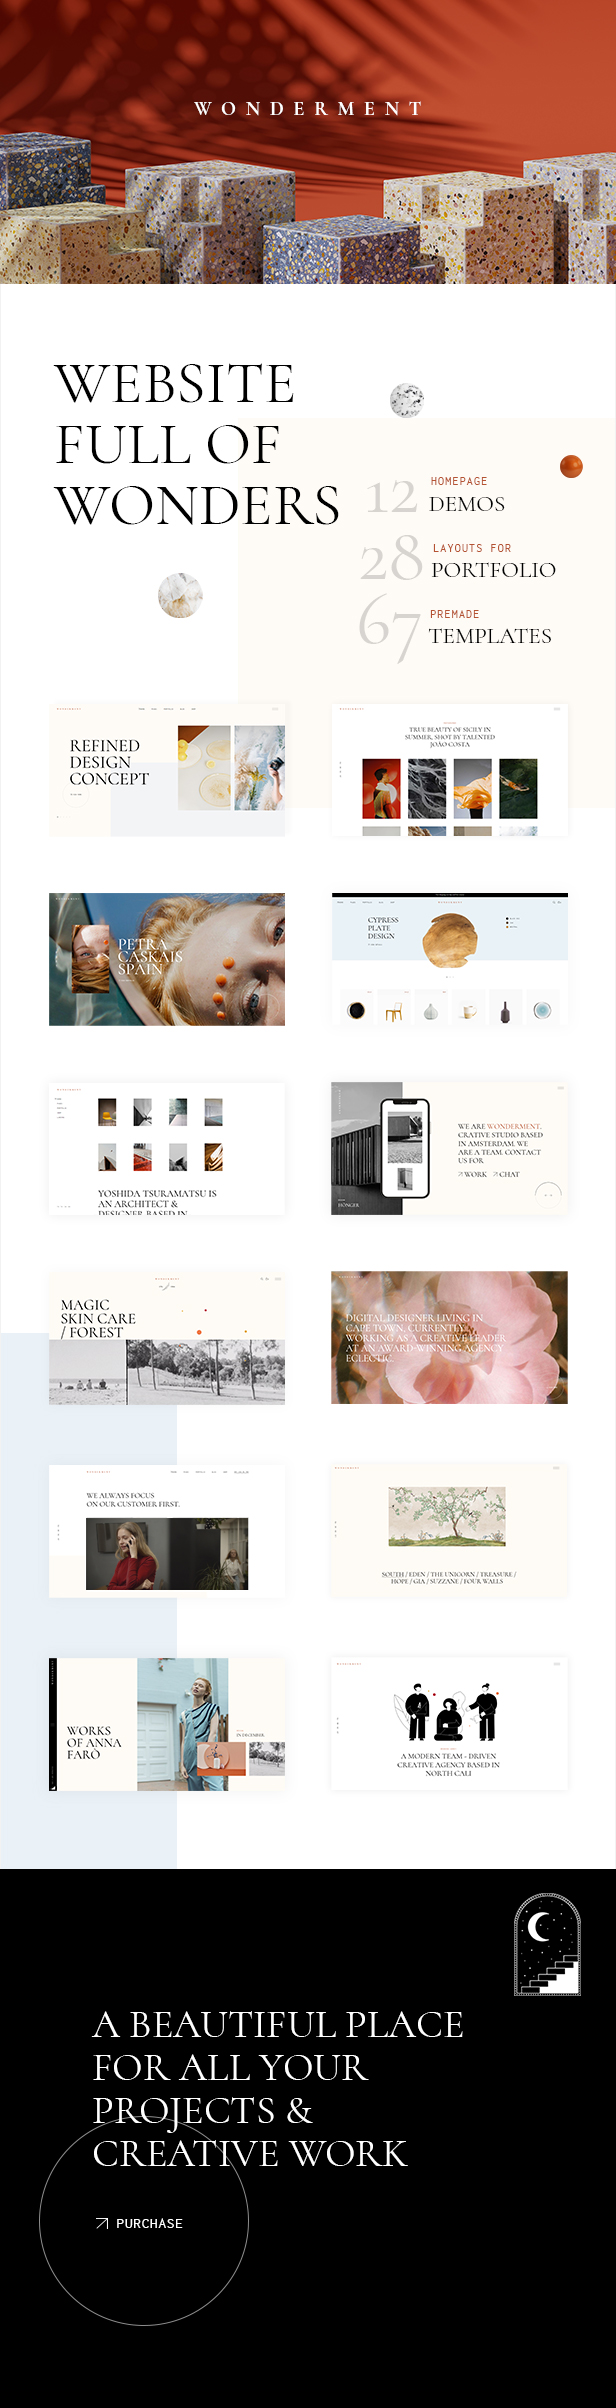 Wonderment - Agency Theme - 2